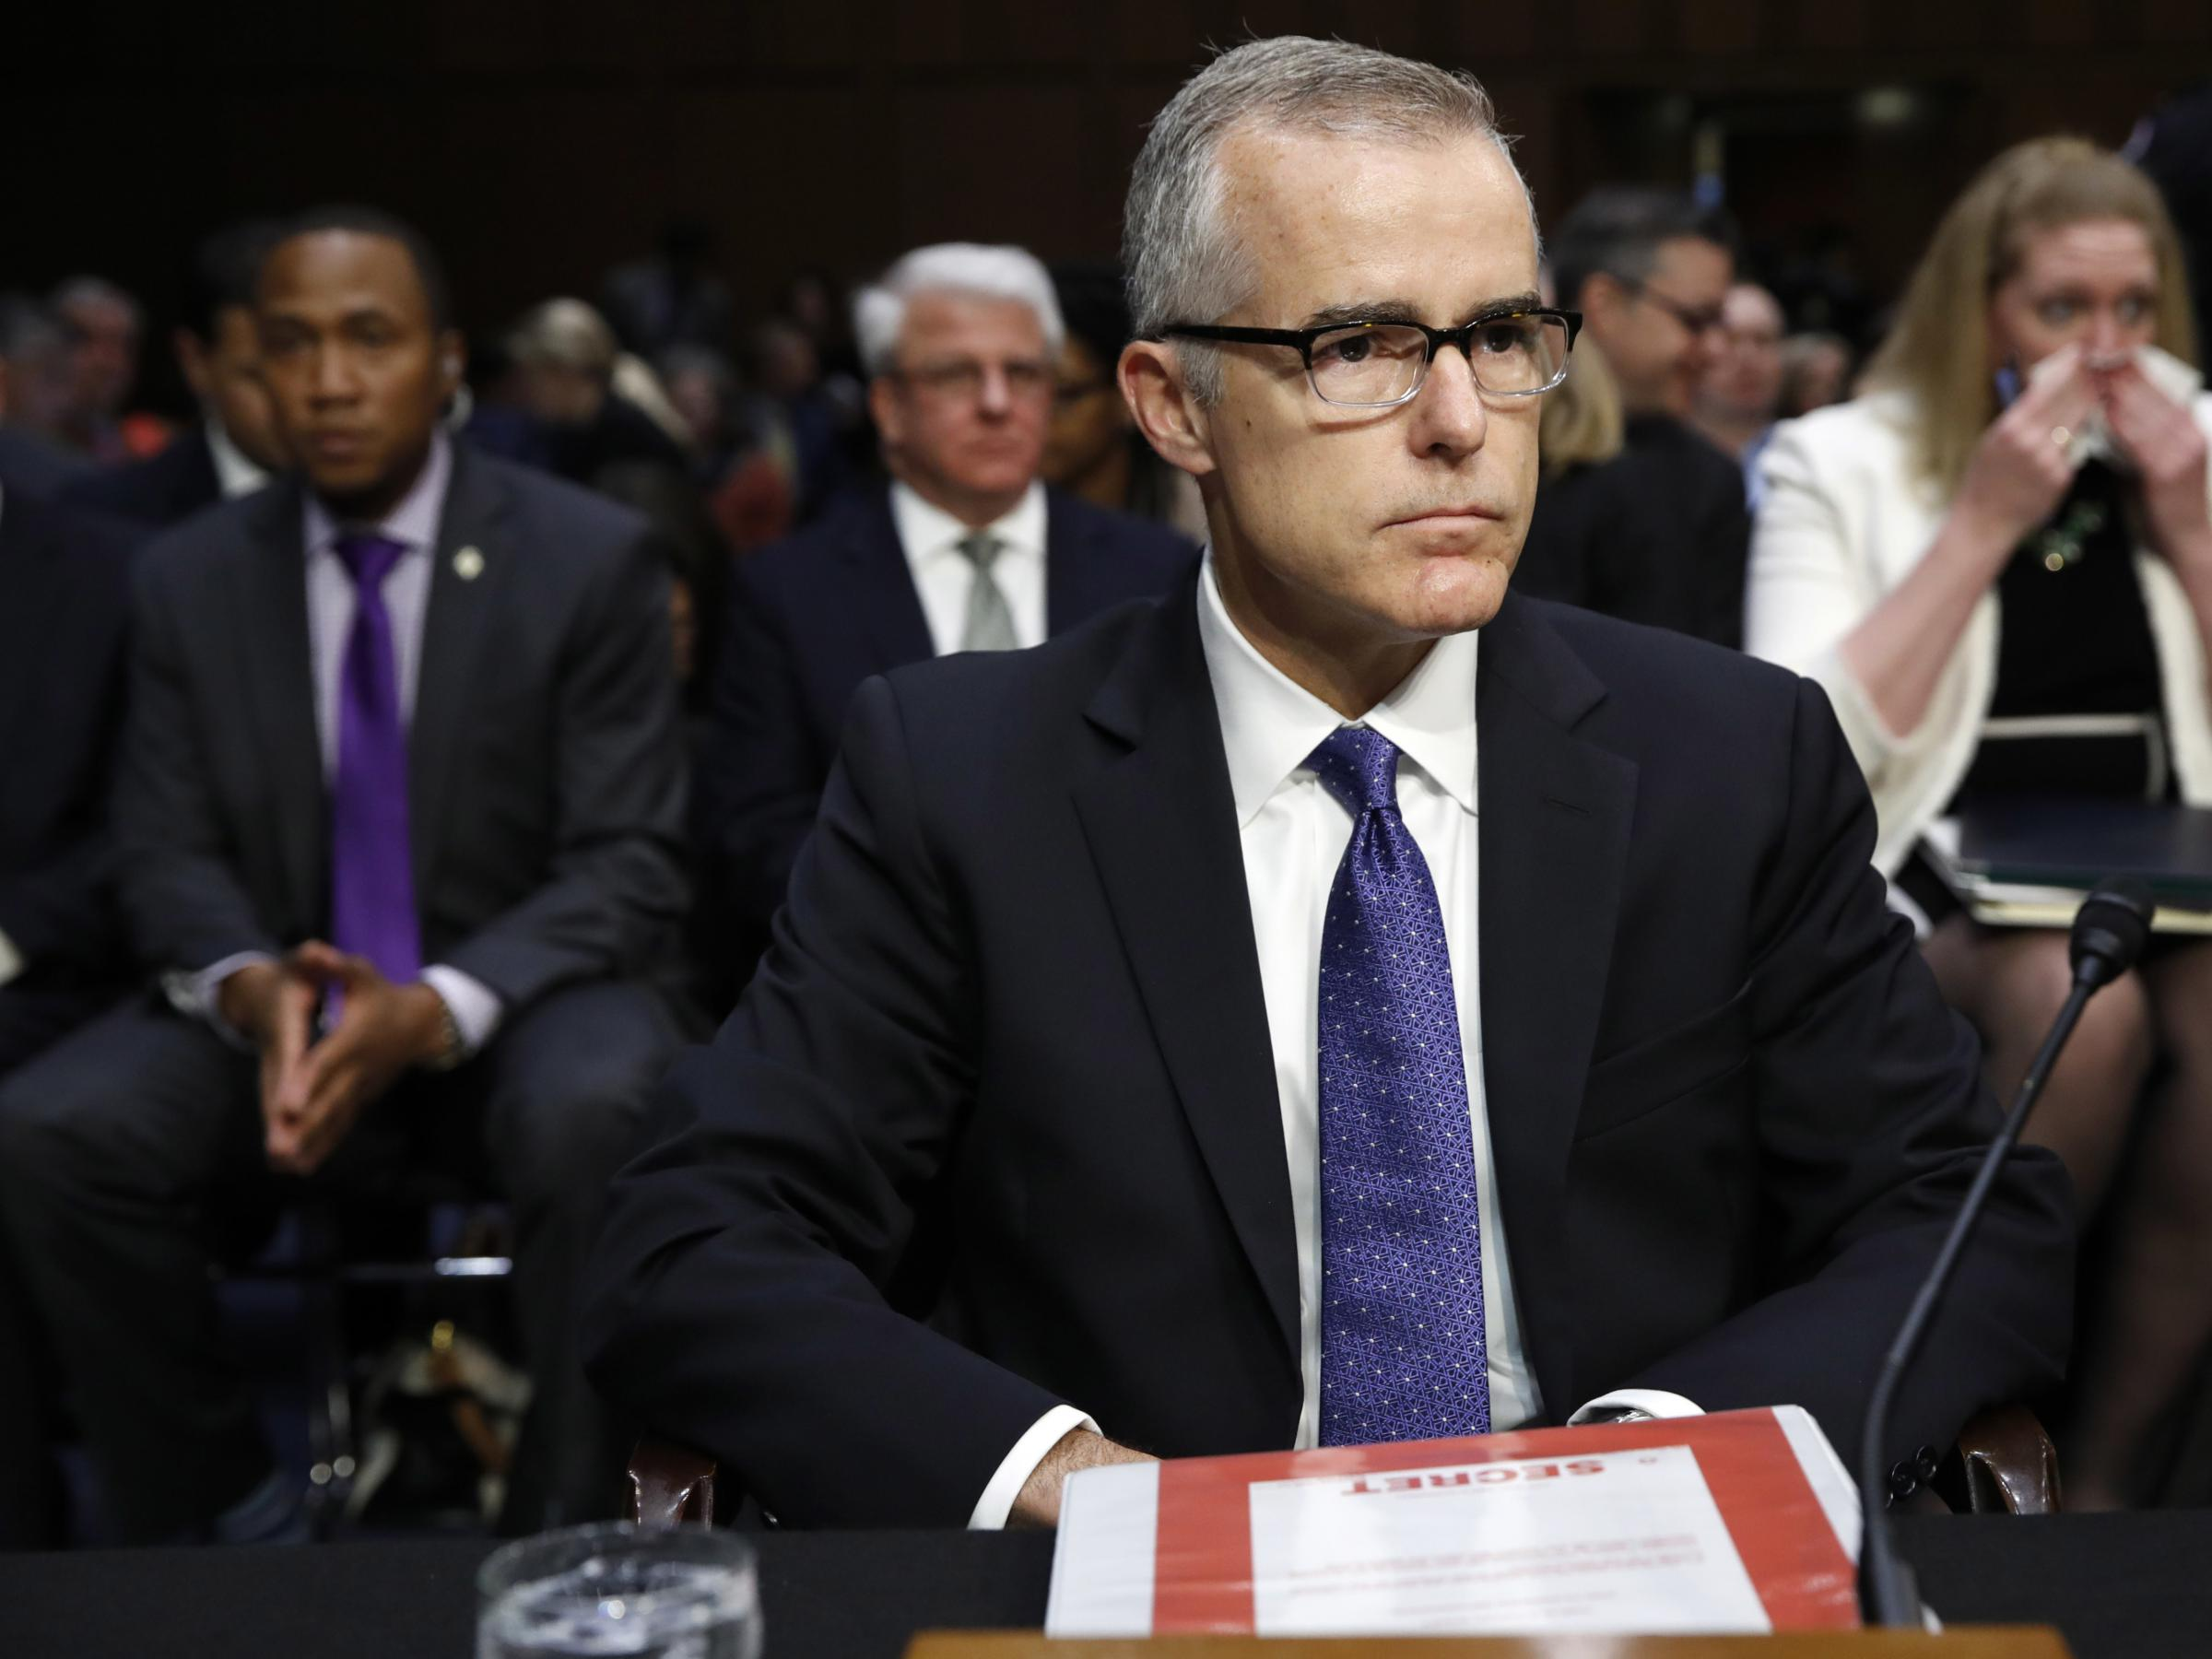 US watchdog sends criminal referral on ex-FBI deputy director Andrew McCabe